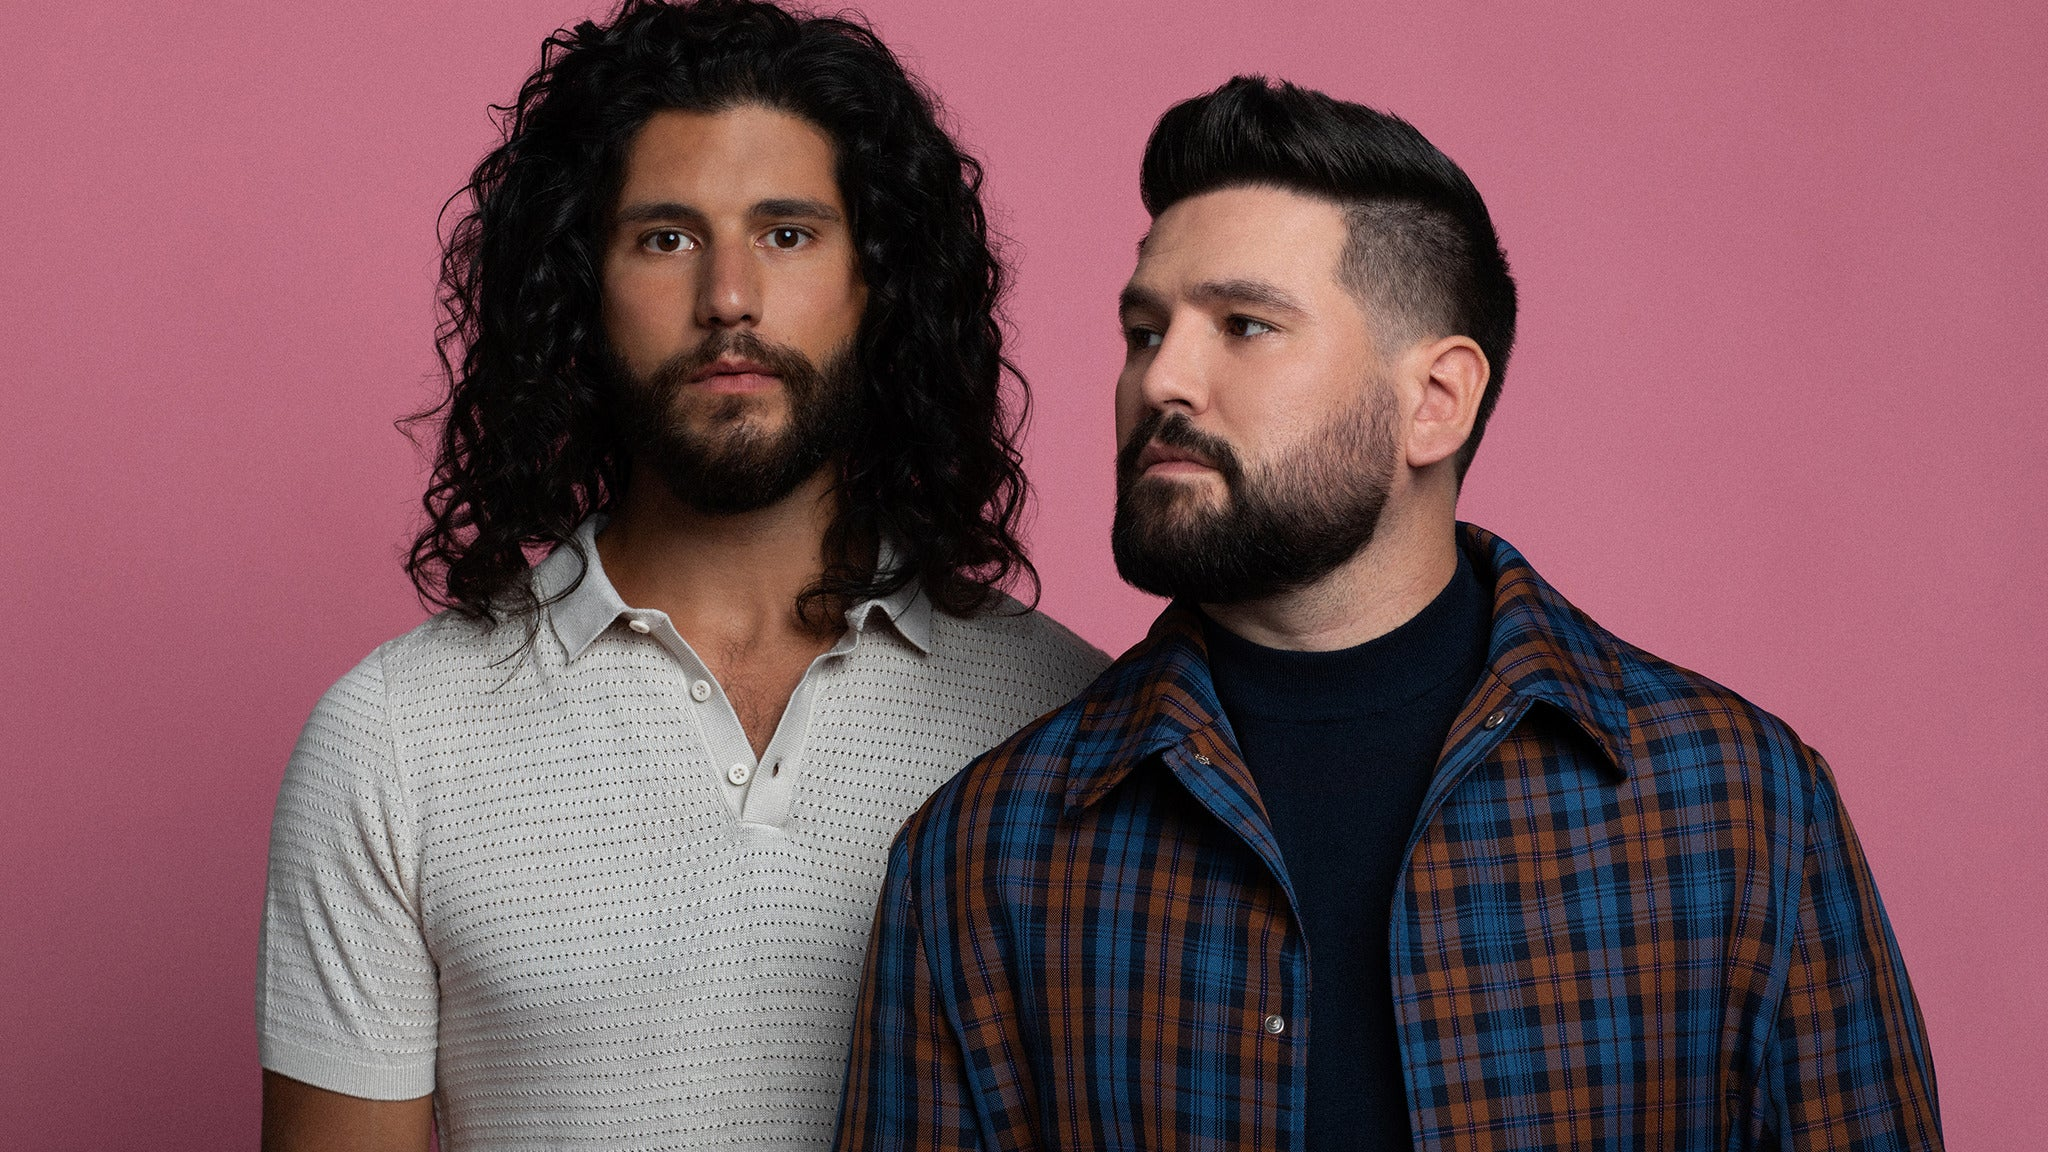 Dan + Shay pre-sale password for early tickets in Hollywood